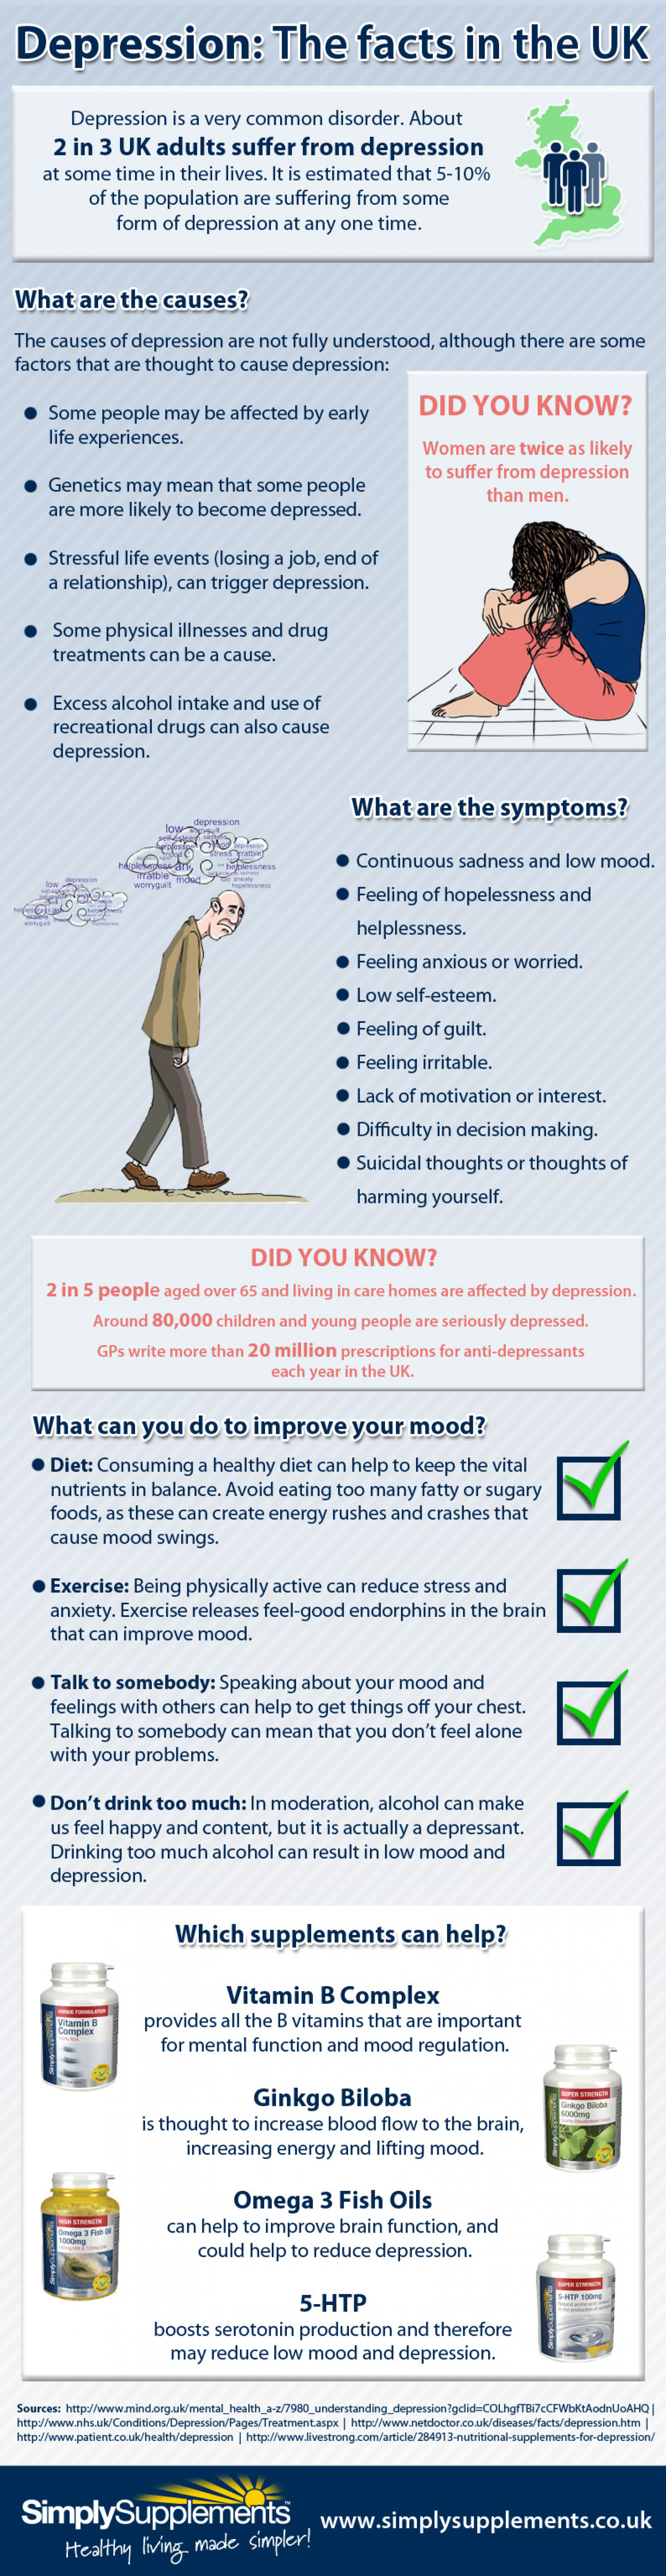 Depression: The facts in the UK Infographic